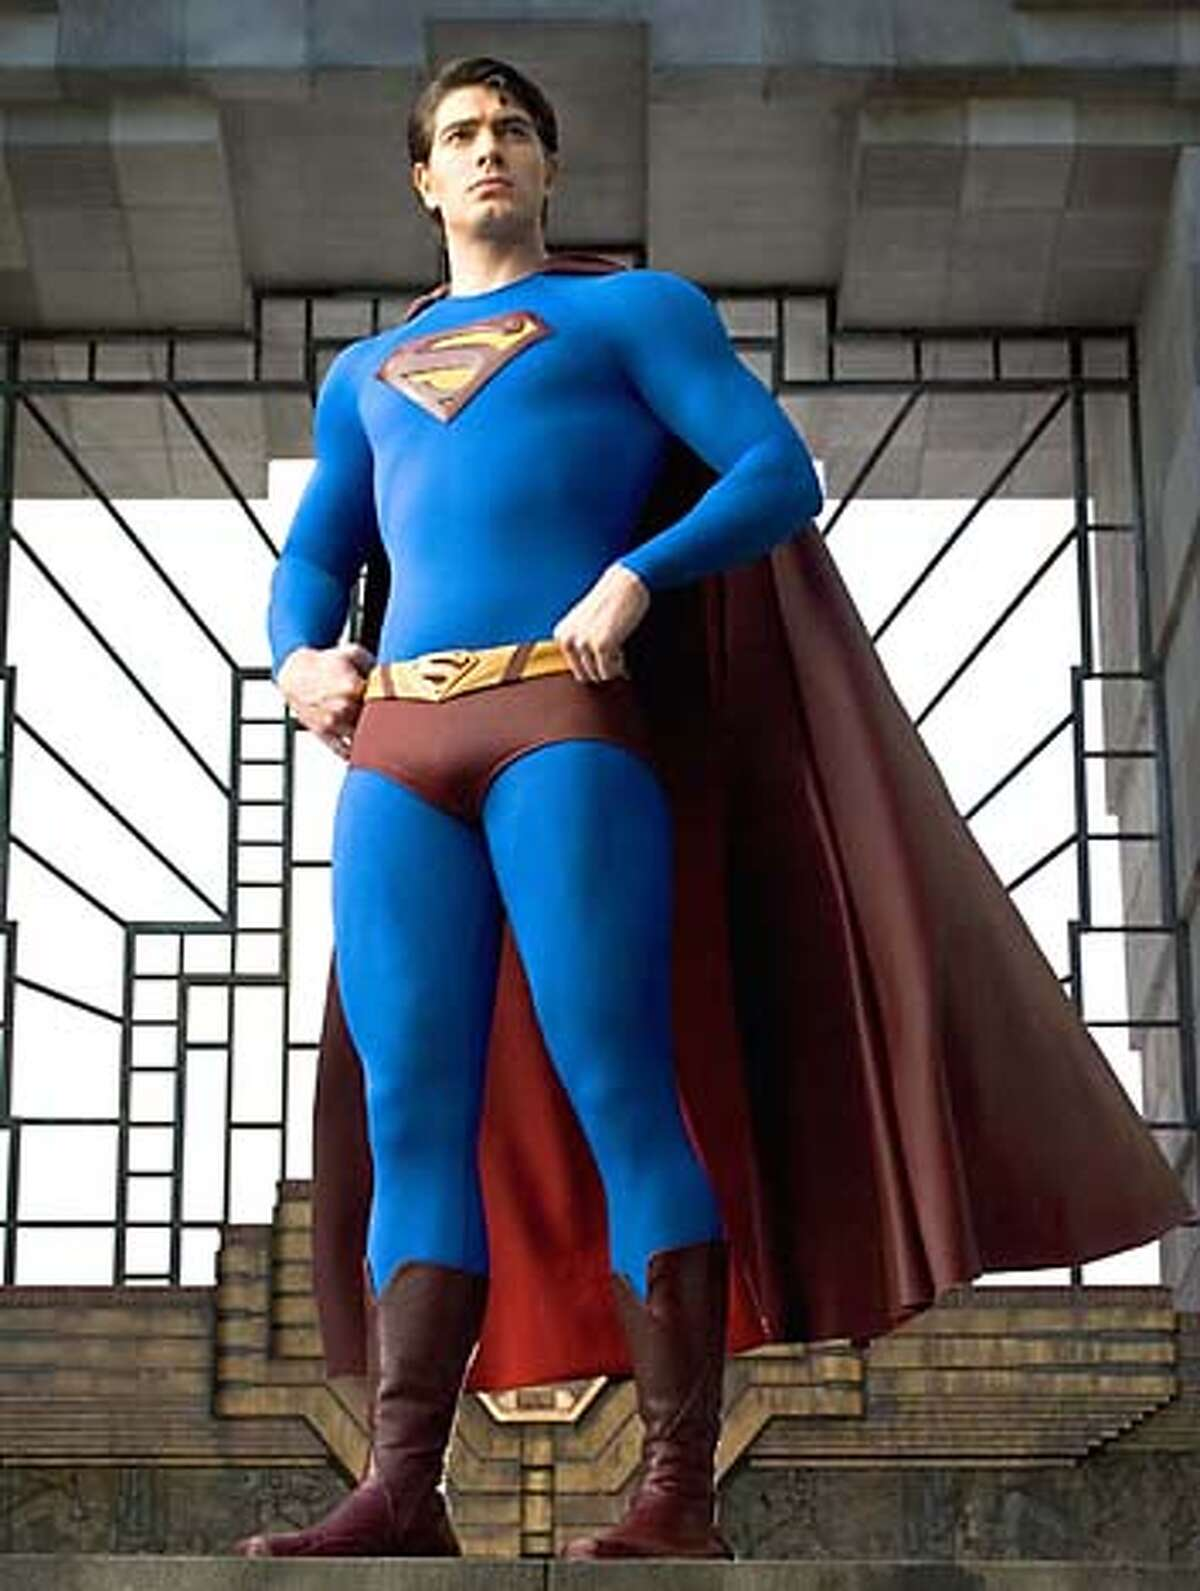 Actor Brandon Routh who stars as Superman is shown in this undated publicity photograph from the upcoming film 'Superman Returns' which is scheduled for release in 2006. NO SALE NO ARCHIVES REUTERS/David James/Warner Bros. Pictures/Handout